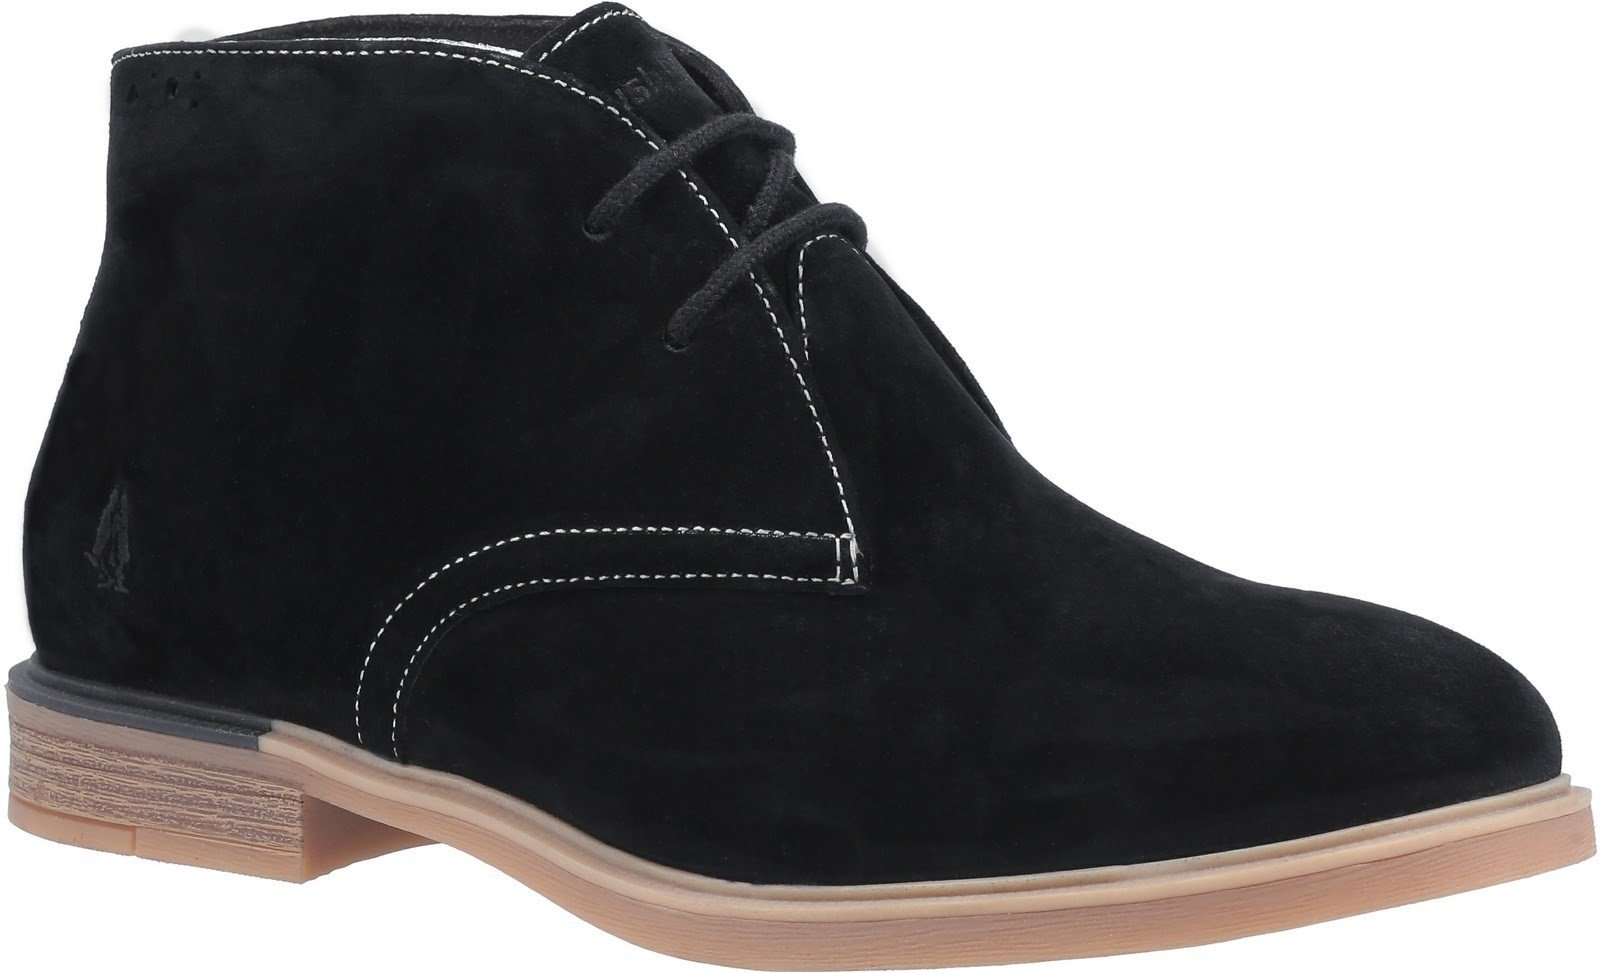 Hush Puppies Women's Bailey Bounce Chukka Boot Various Colours 29215 - Black Suede 3